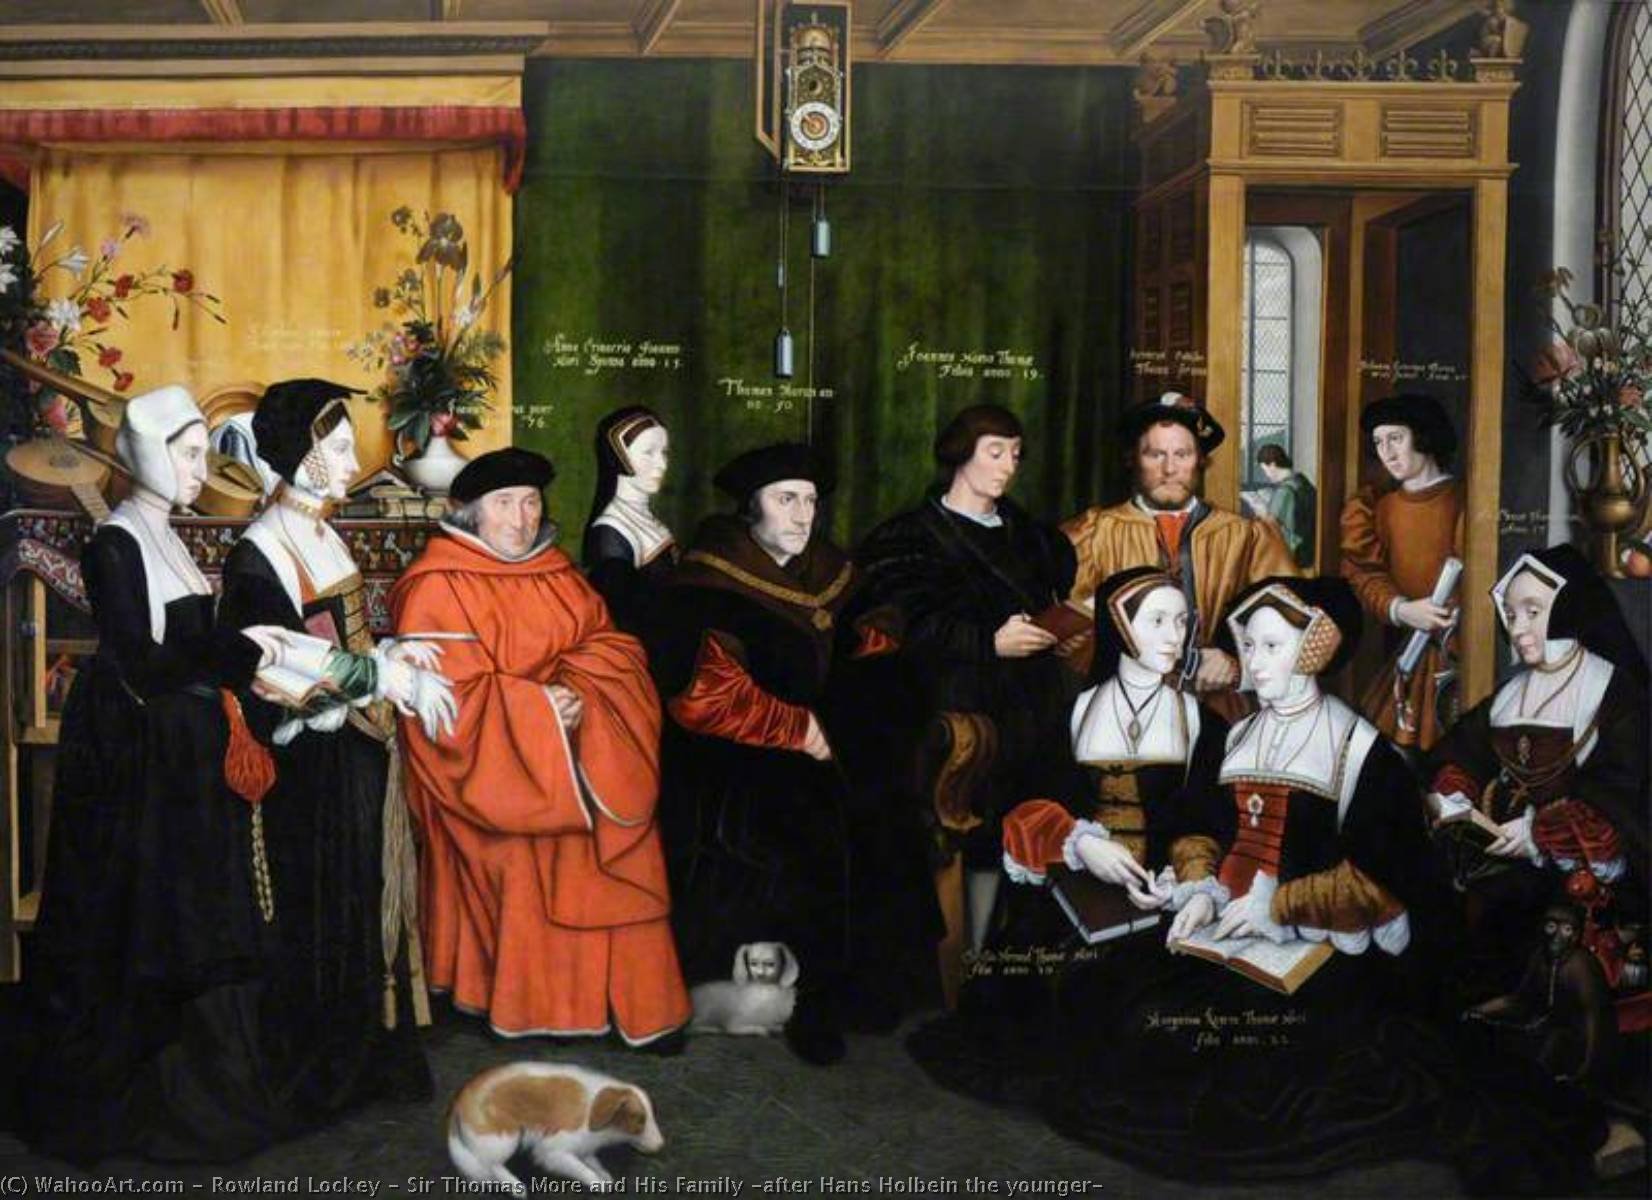 Sir Thomas More and His Family (after Hans Holbein the younger), Oil On Canvas by Rowland Lockey